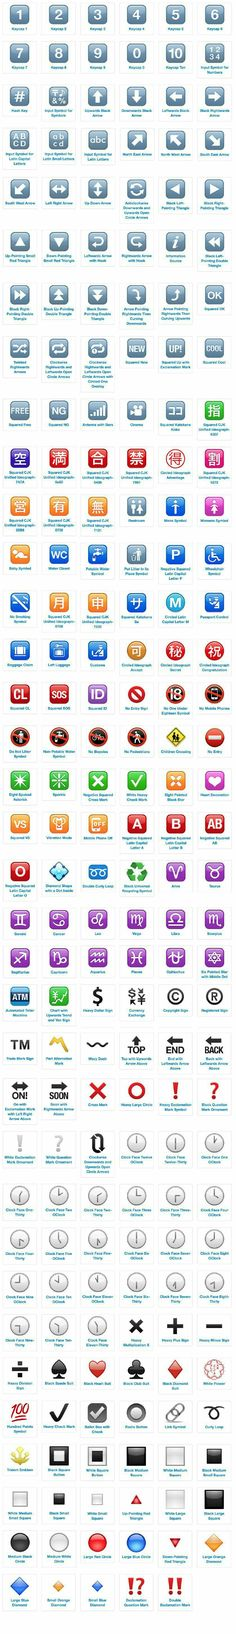 Iphone Emoji Text Icons Defined Iphone Emoji Defined Pinterest